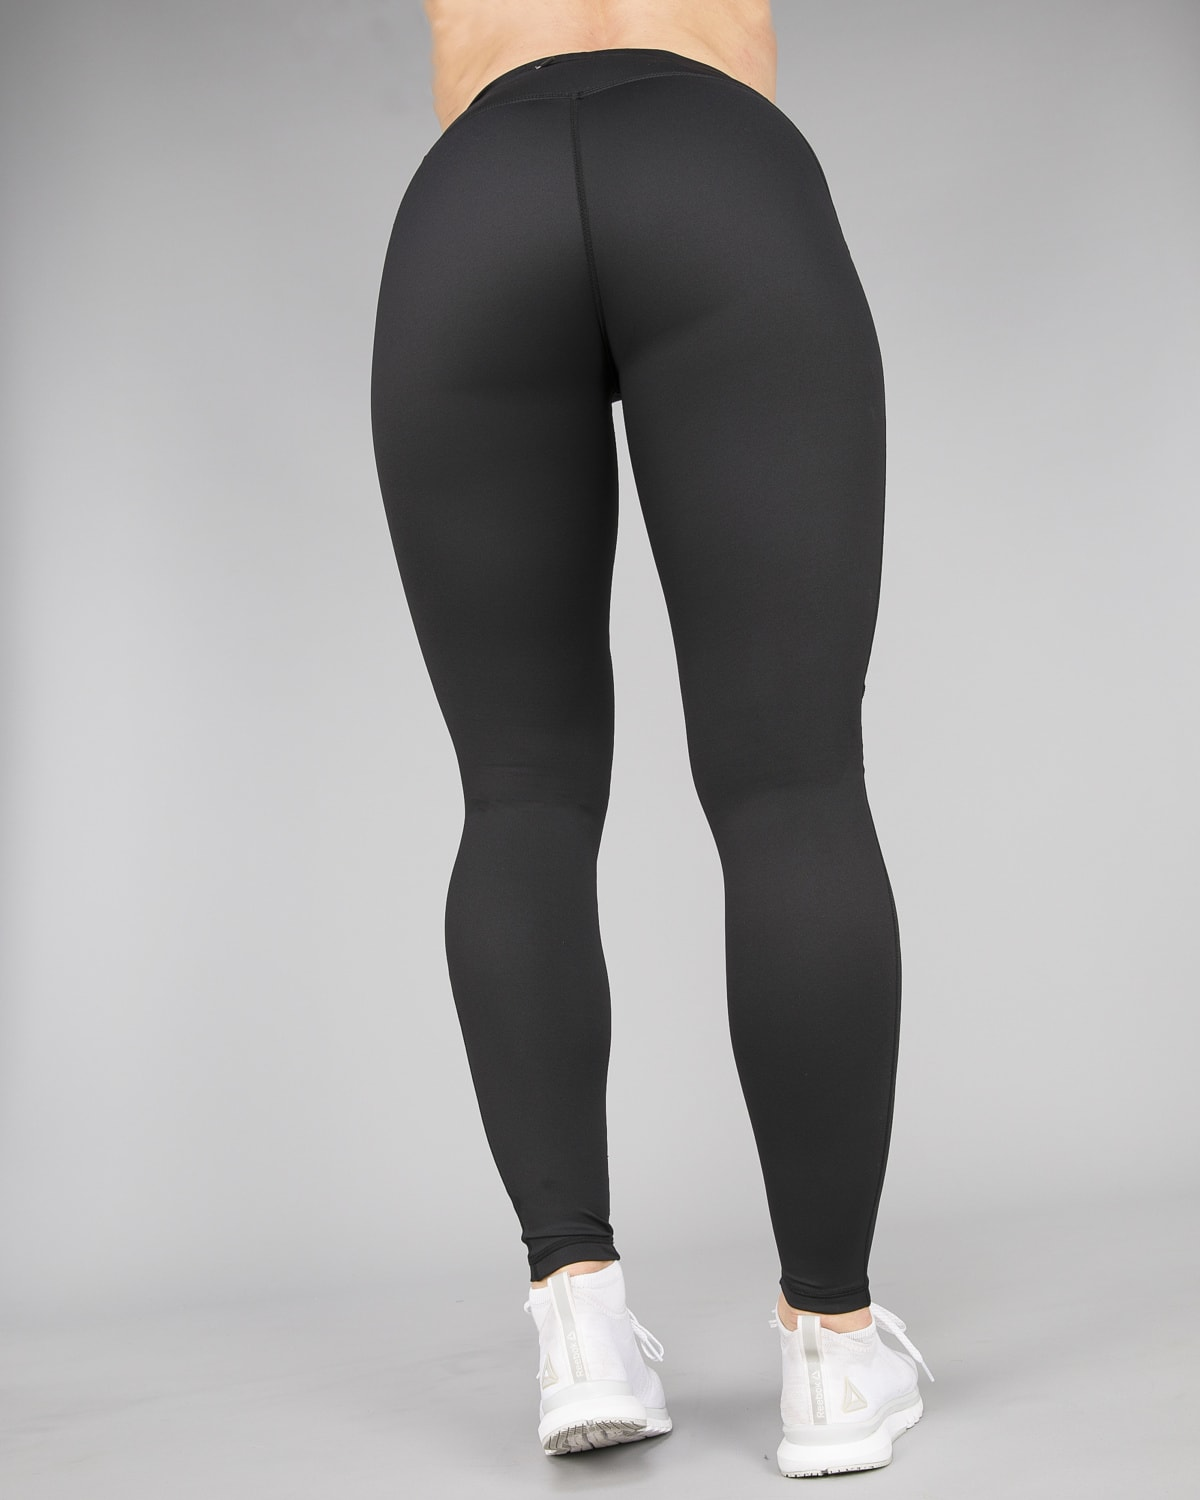 We Are Fit Star Black Tights3